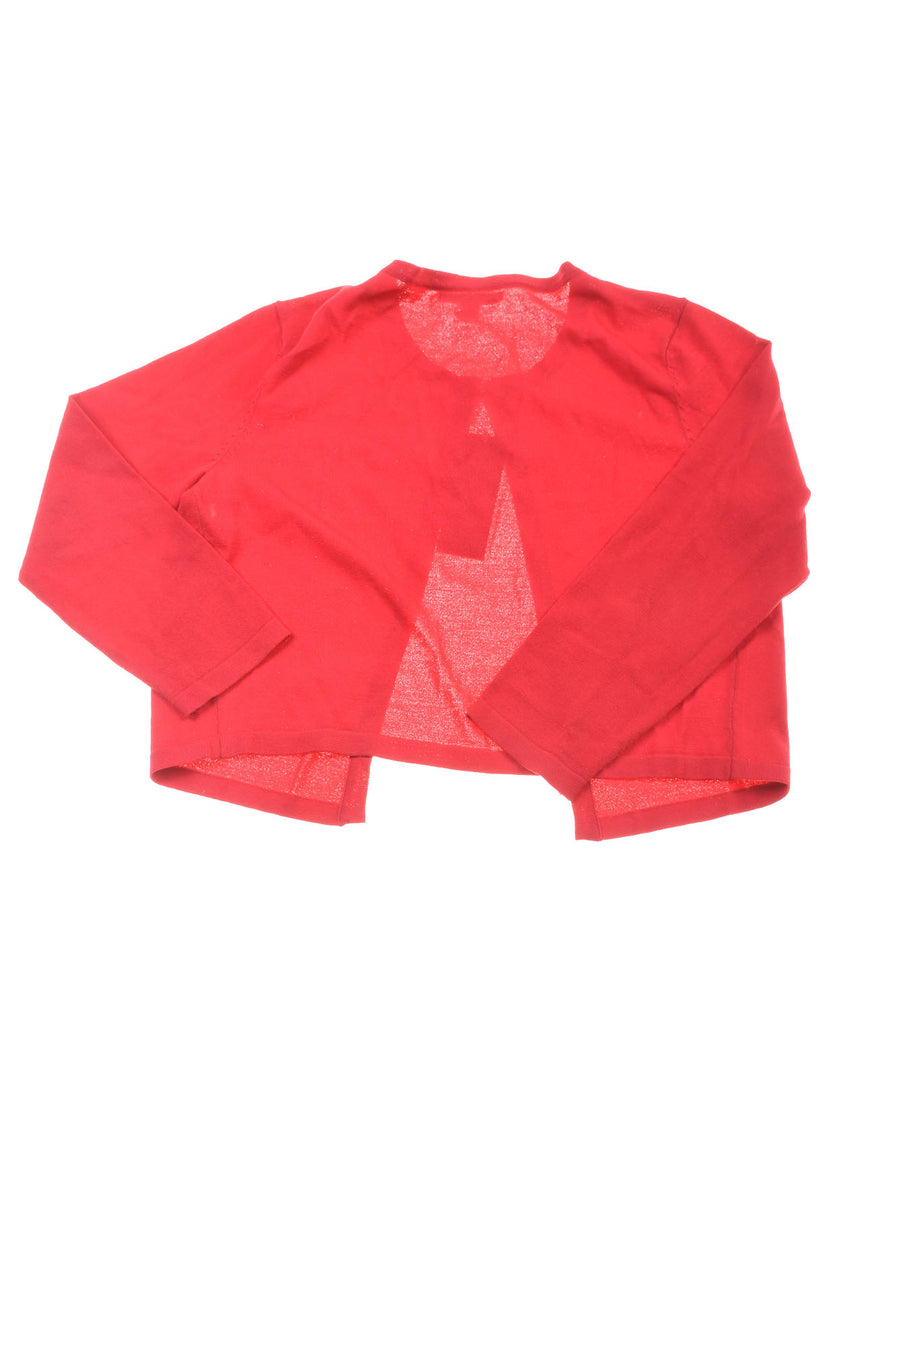 NEW Eva Menoles Women's Sweater X-Small Red